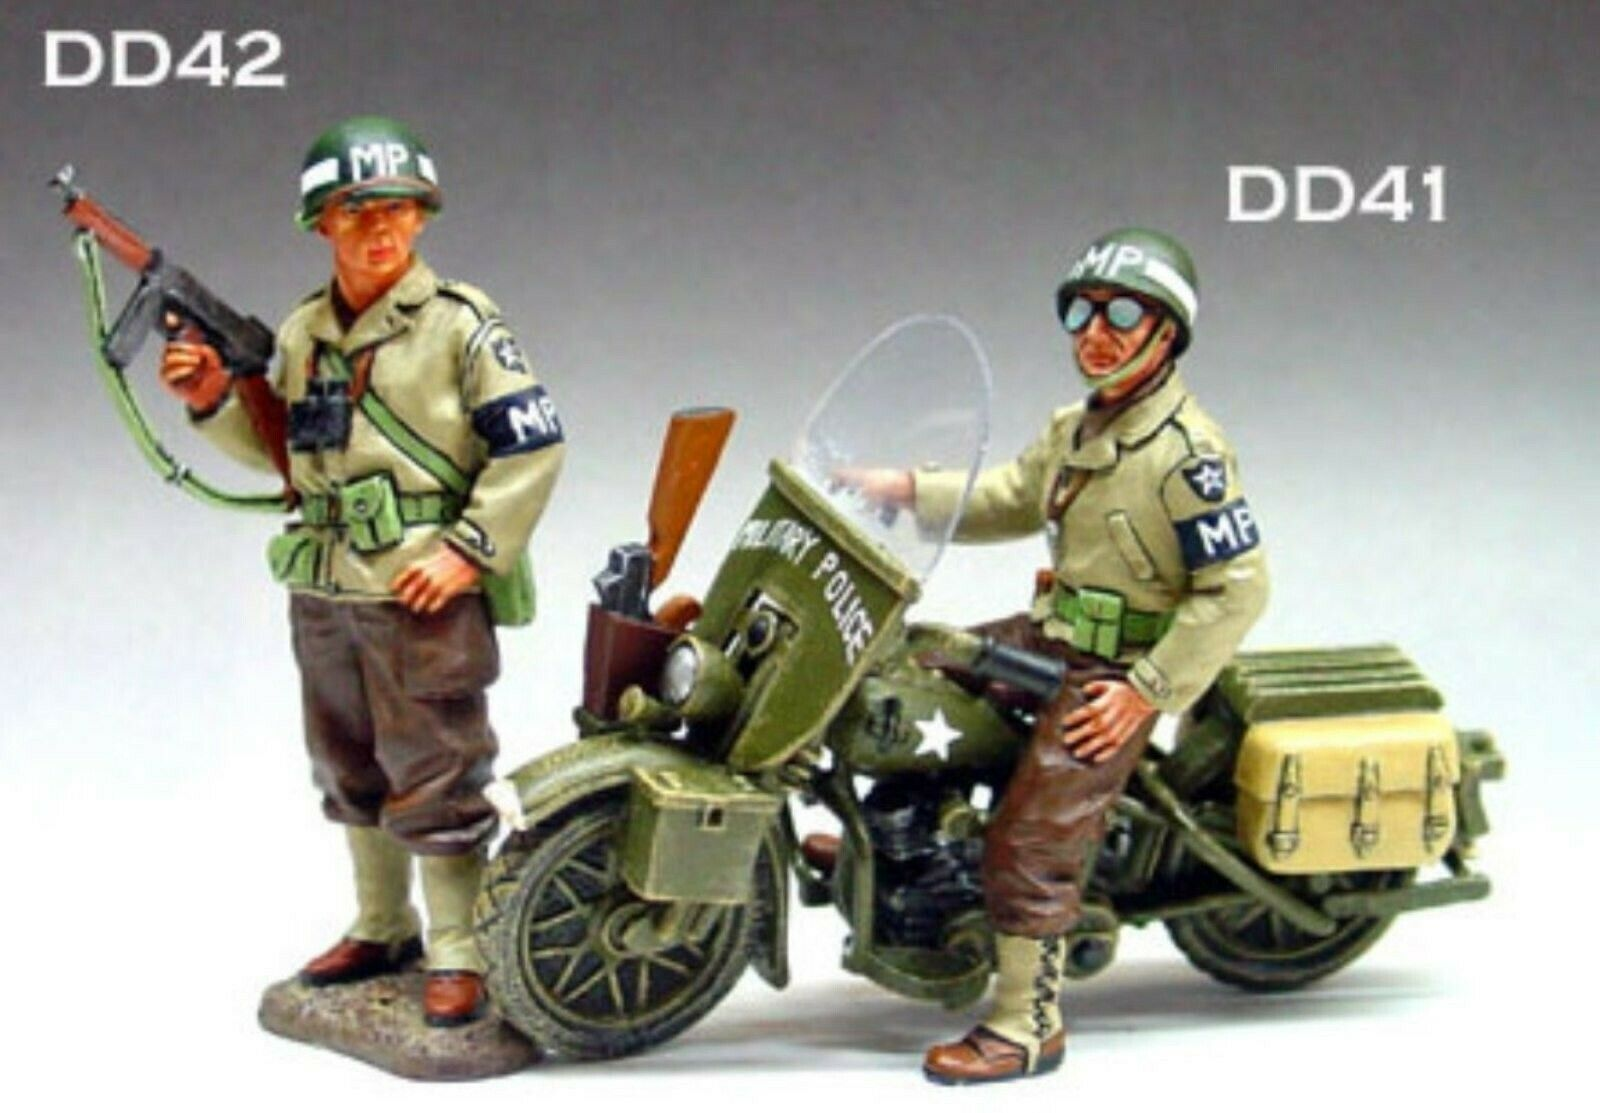 WOW EXTREMELY RARE King & Country D Day DD041 042 US MP Set 2 fig + Harley BNIB